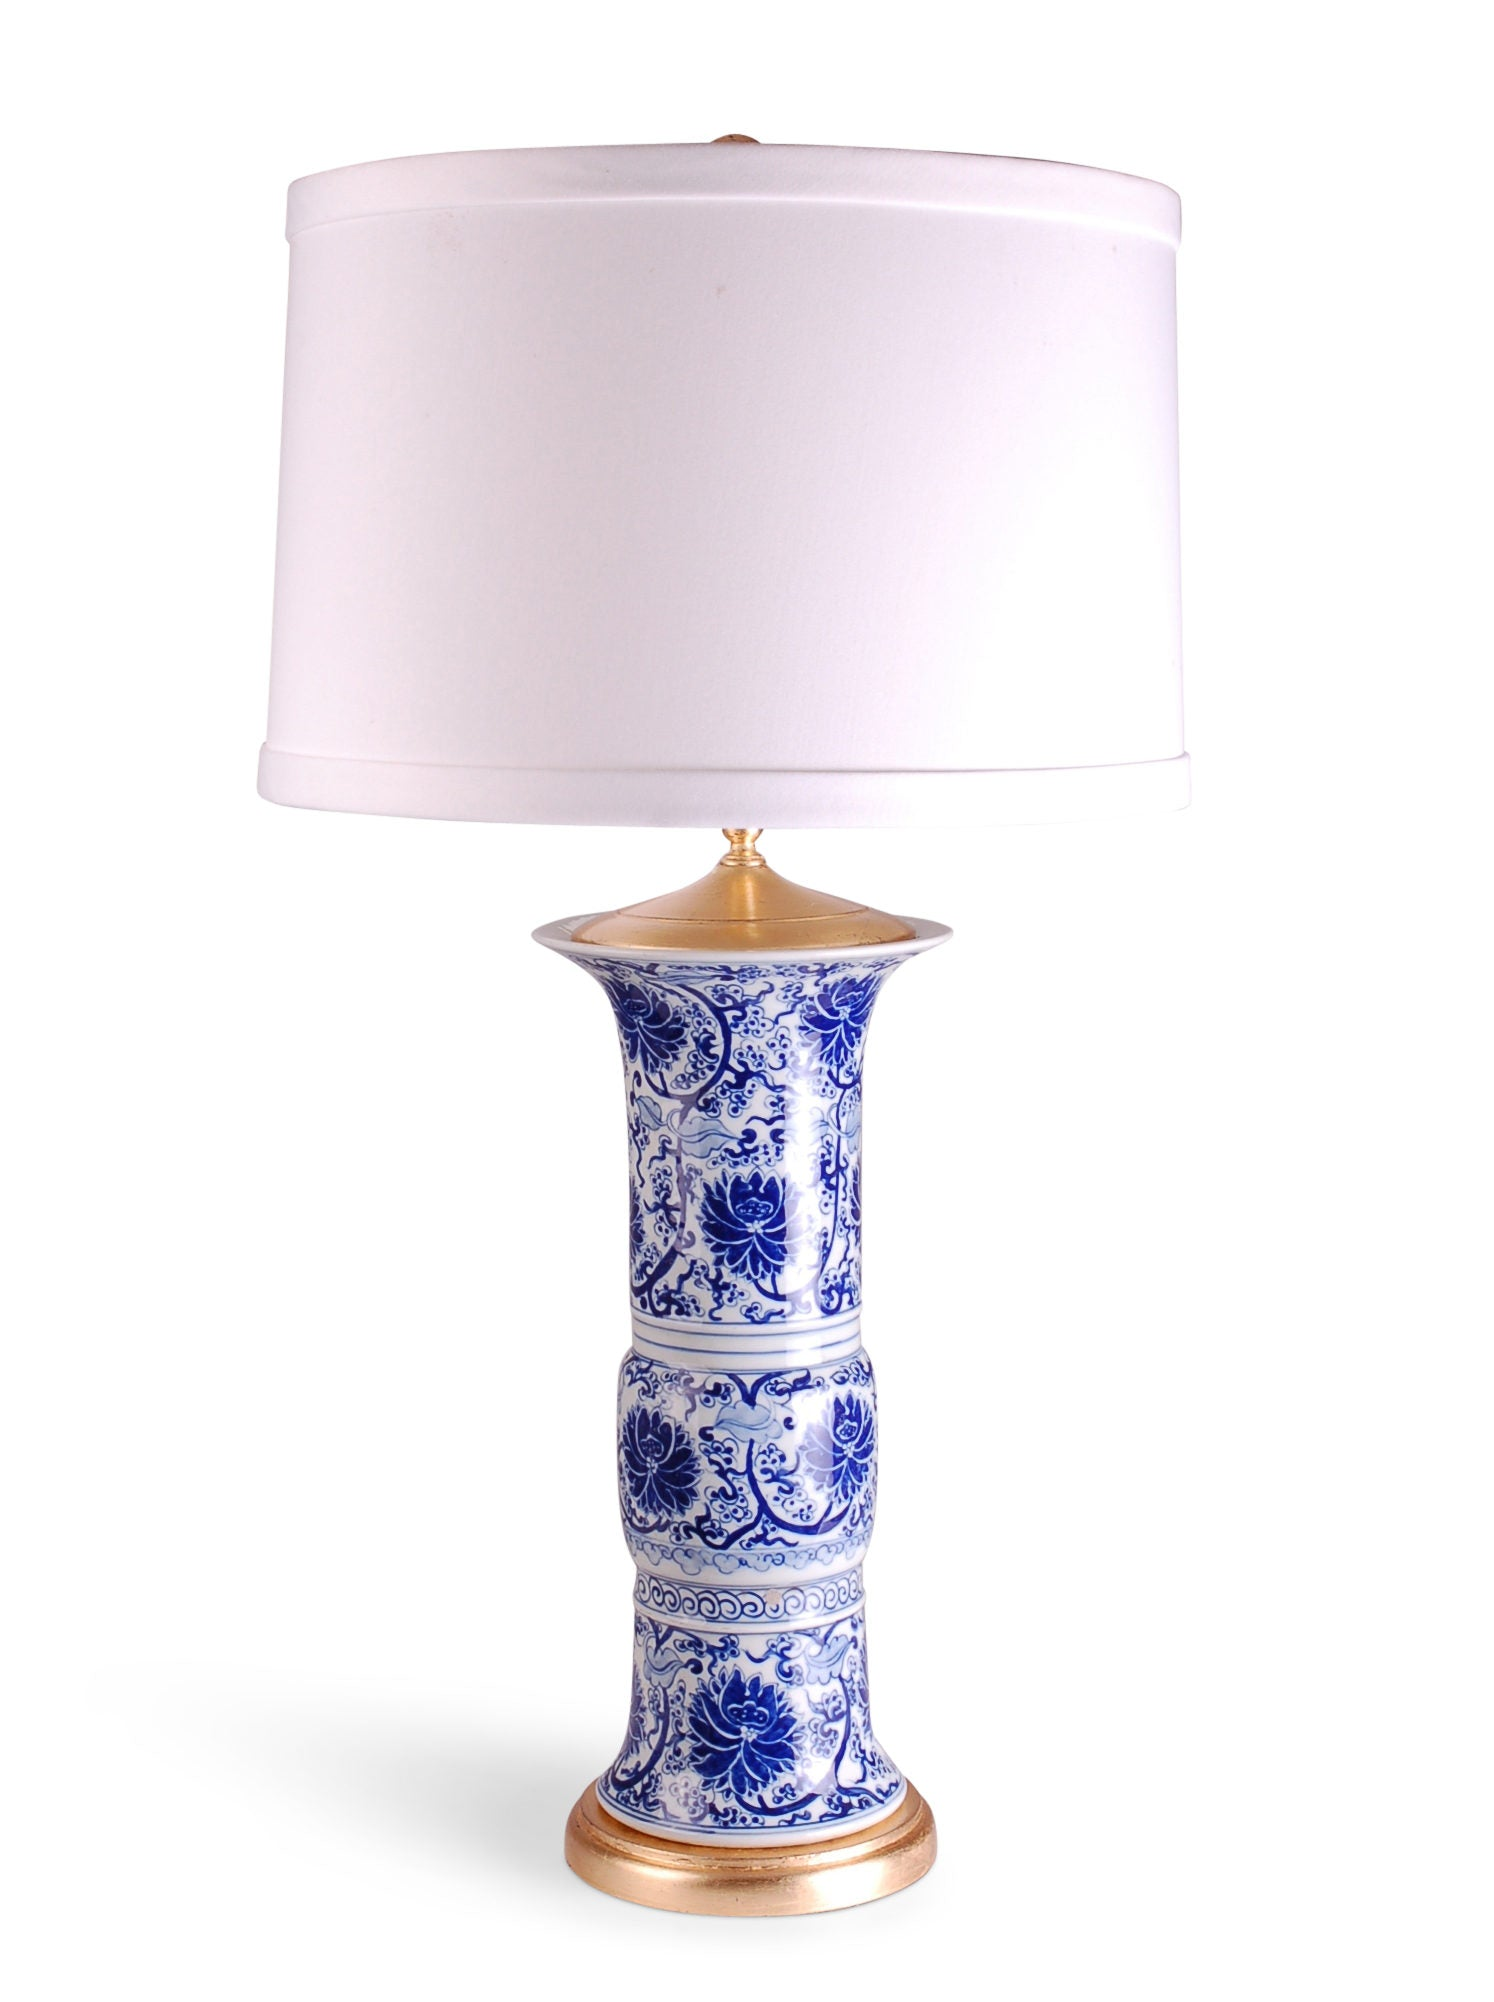 "31"" Tall Blue and White Beaker Lamp w/ Gold Leaf Base"